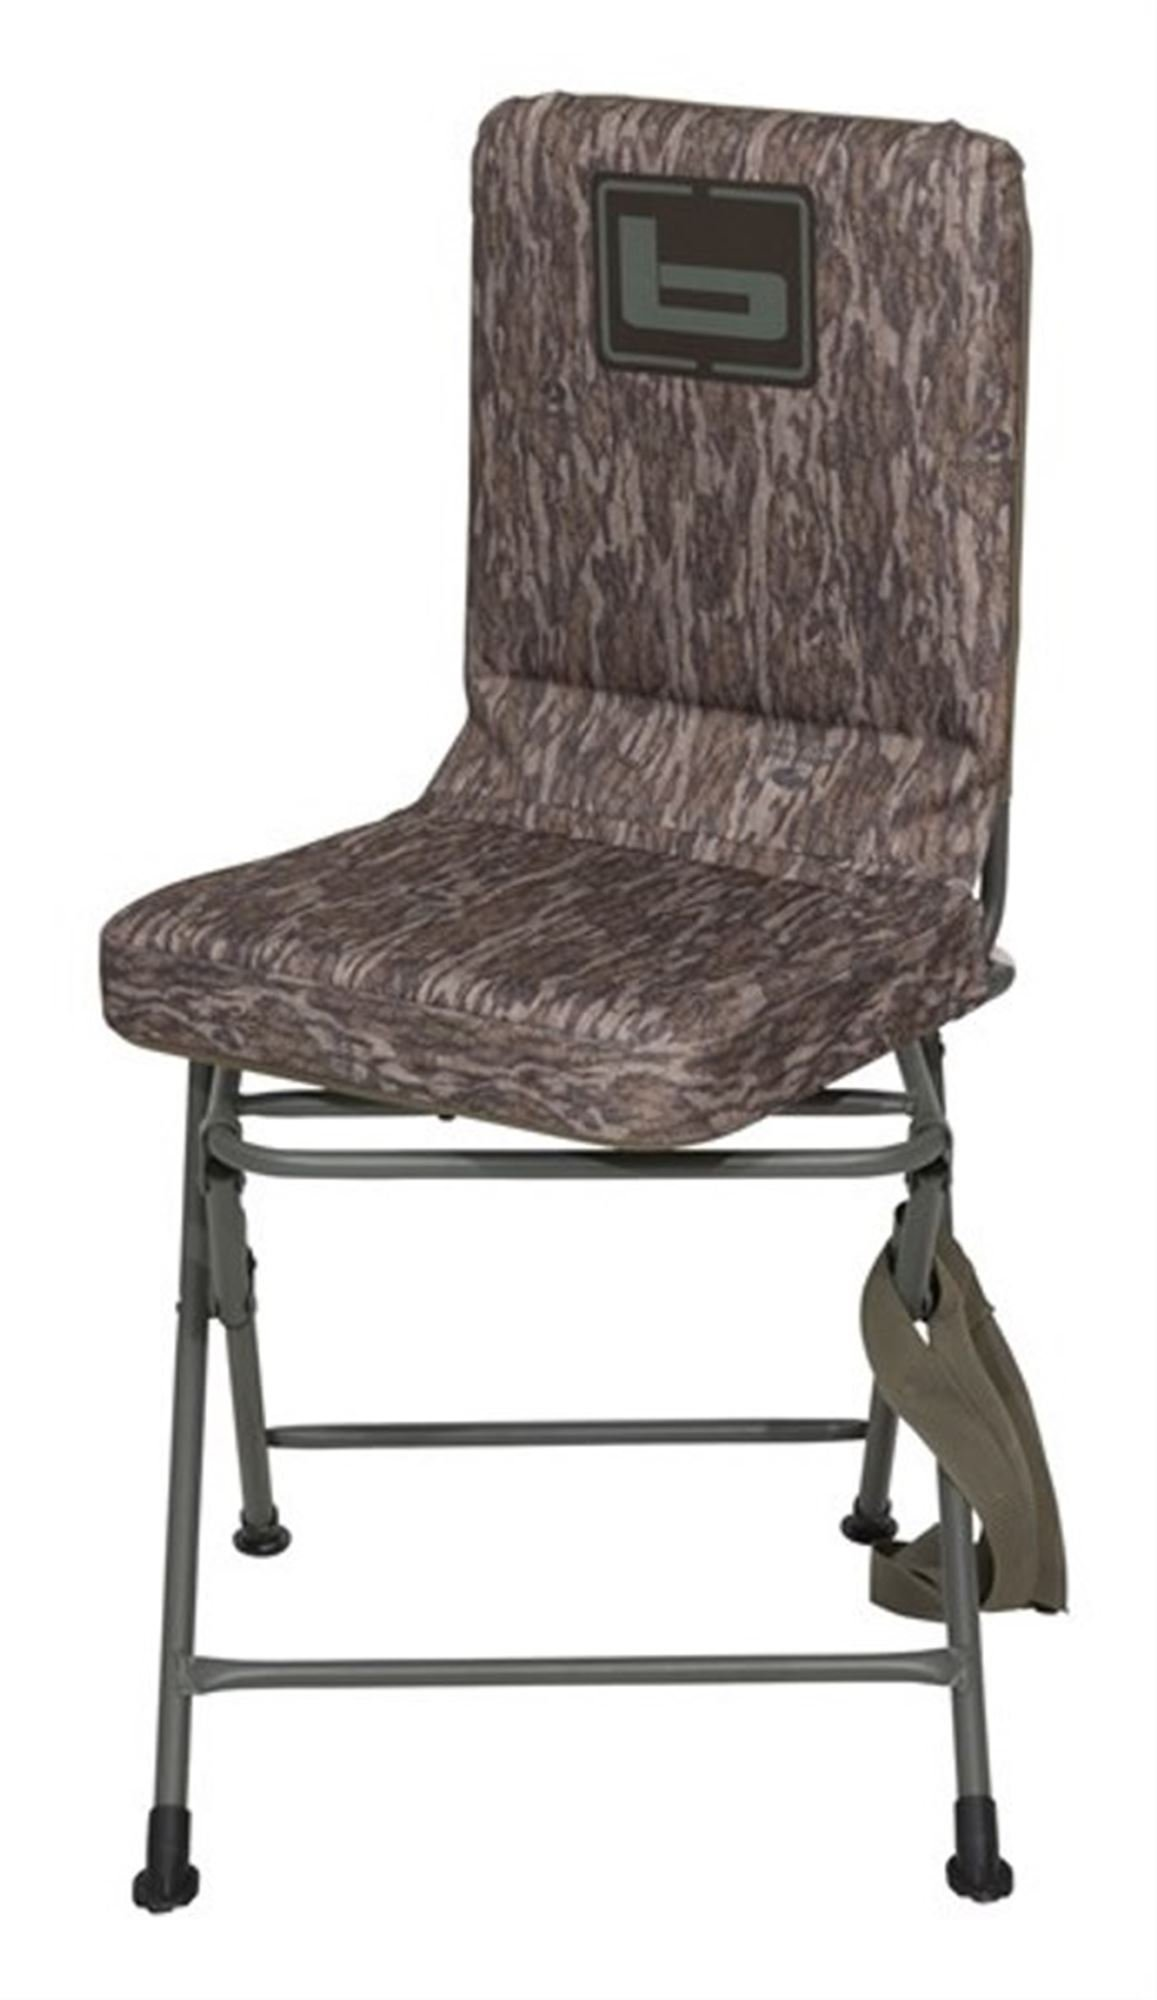 Banded B08709 Swivel Blind Chair Tall Bottomland Hunting Gear by Banded (Image #1)